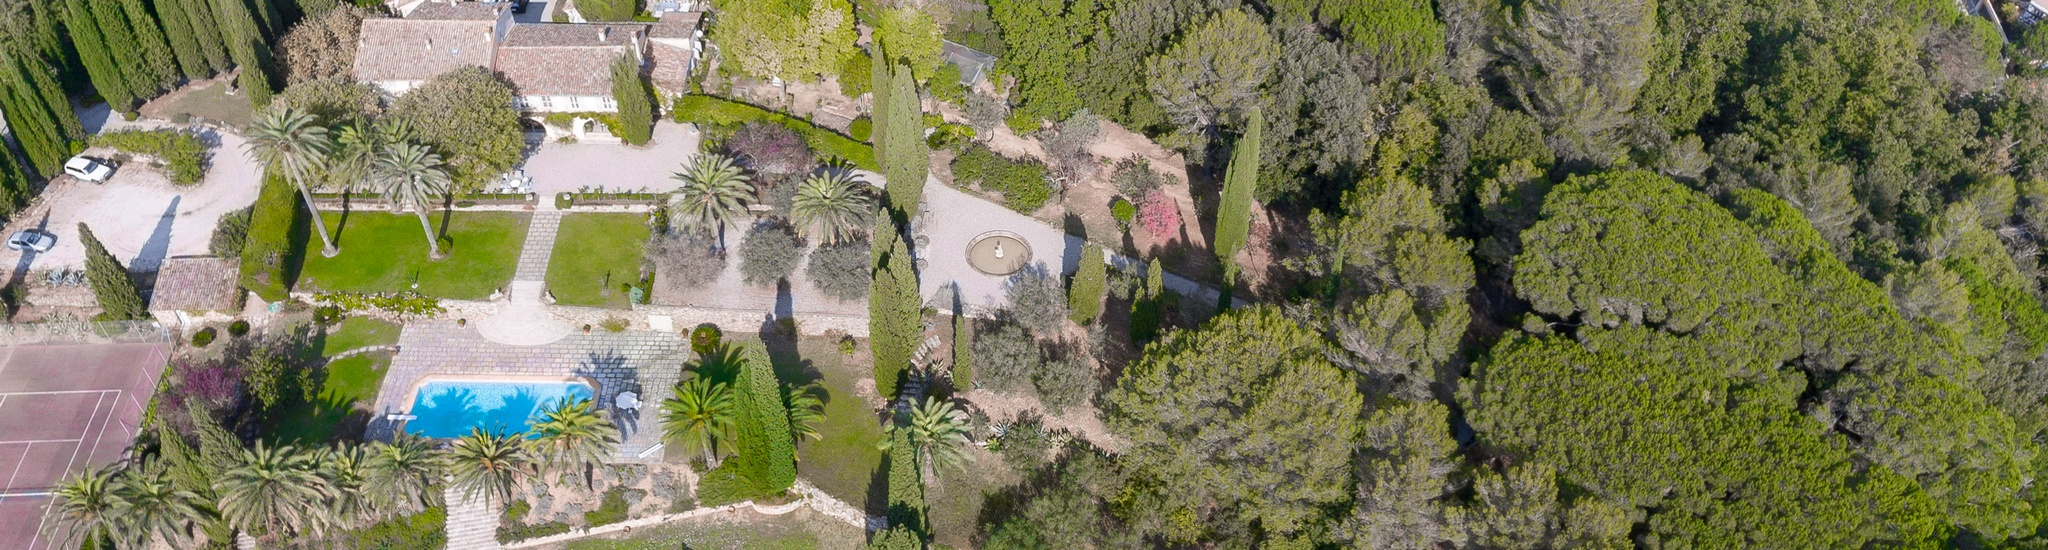 AURIBEAU SUR SIAGNE - 06810 HINTERLAND OF CANNES - Exceptional area of 4 hectares, the charm is fe...